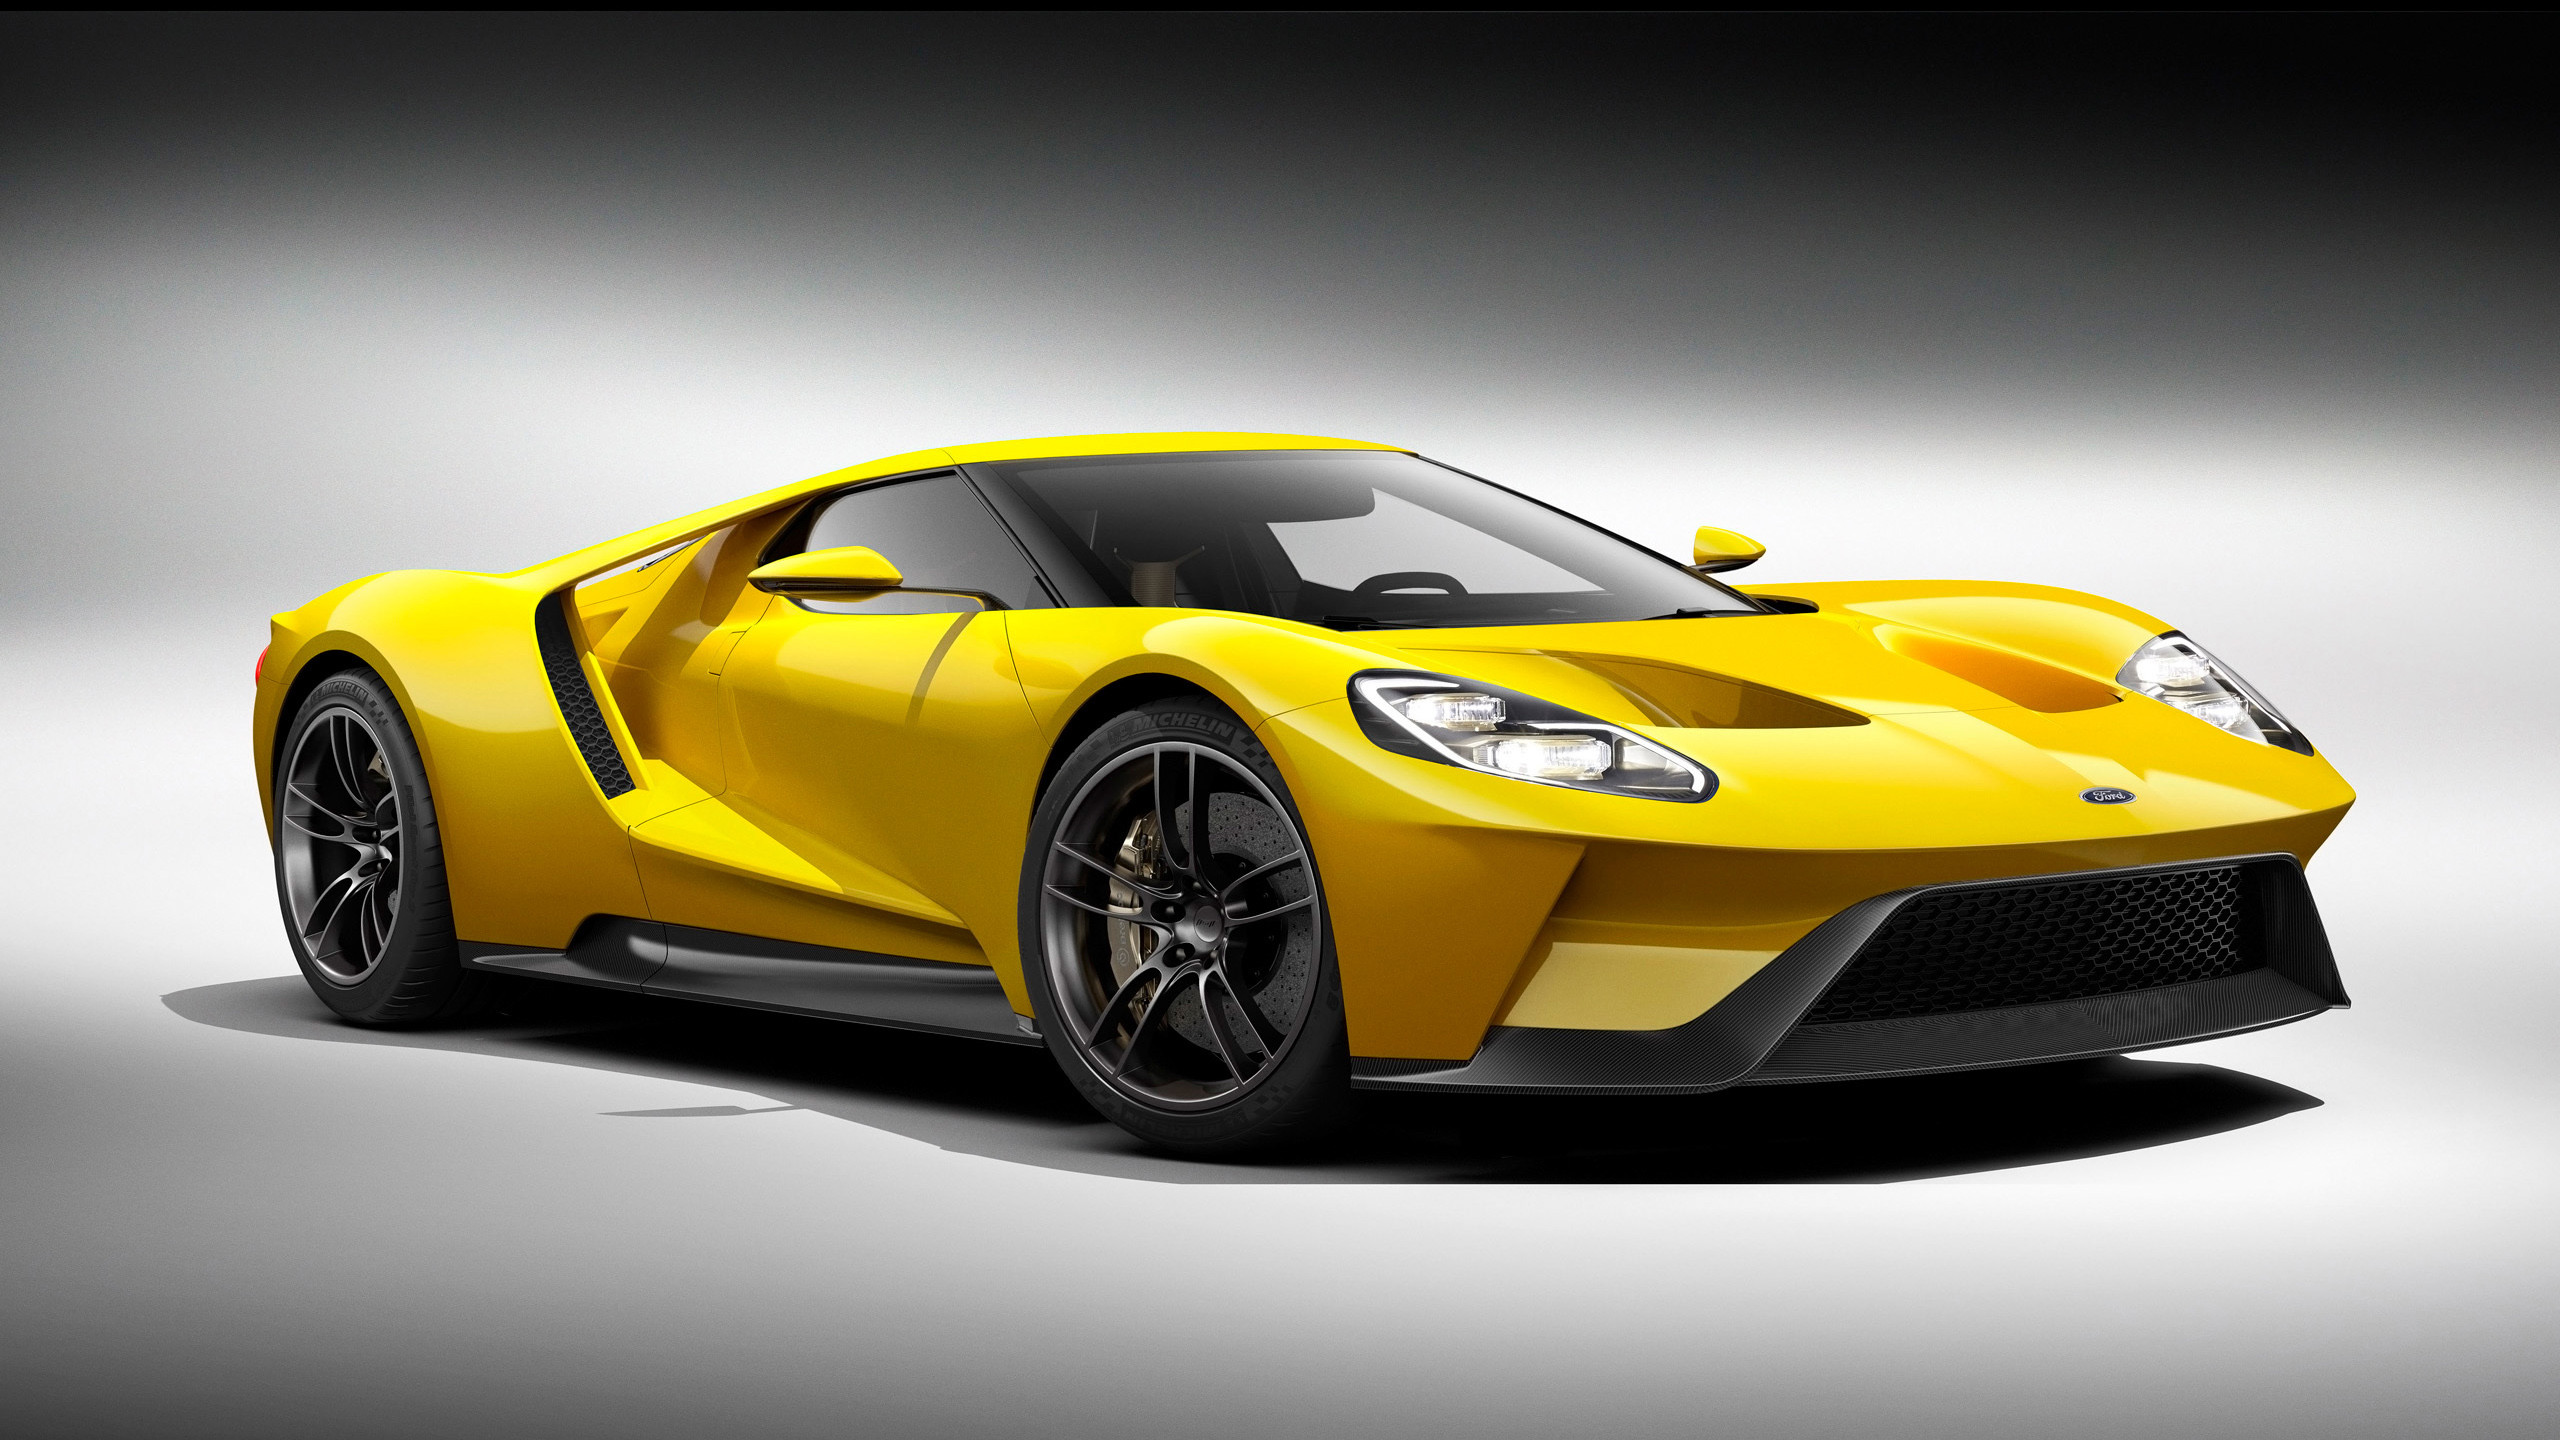 2560x1440 Ford GT images Ford GT 2016 Yellow HD wallpaper and background photos